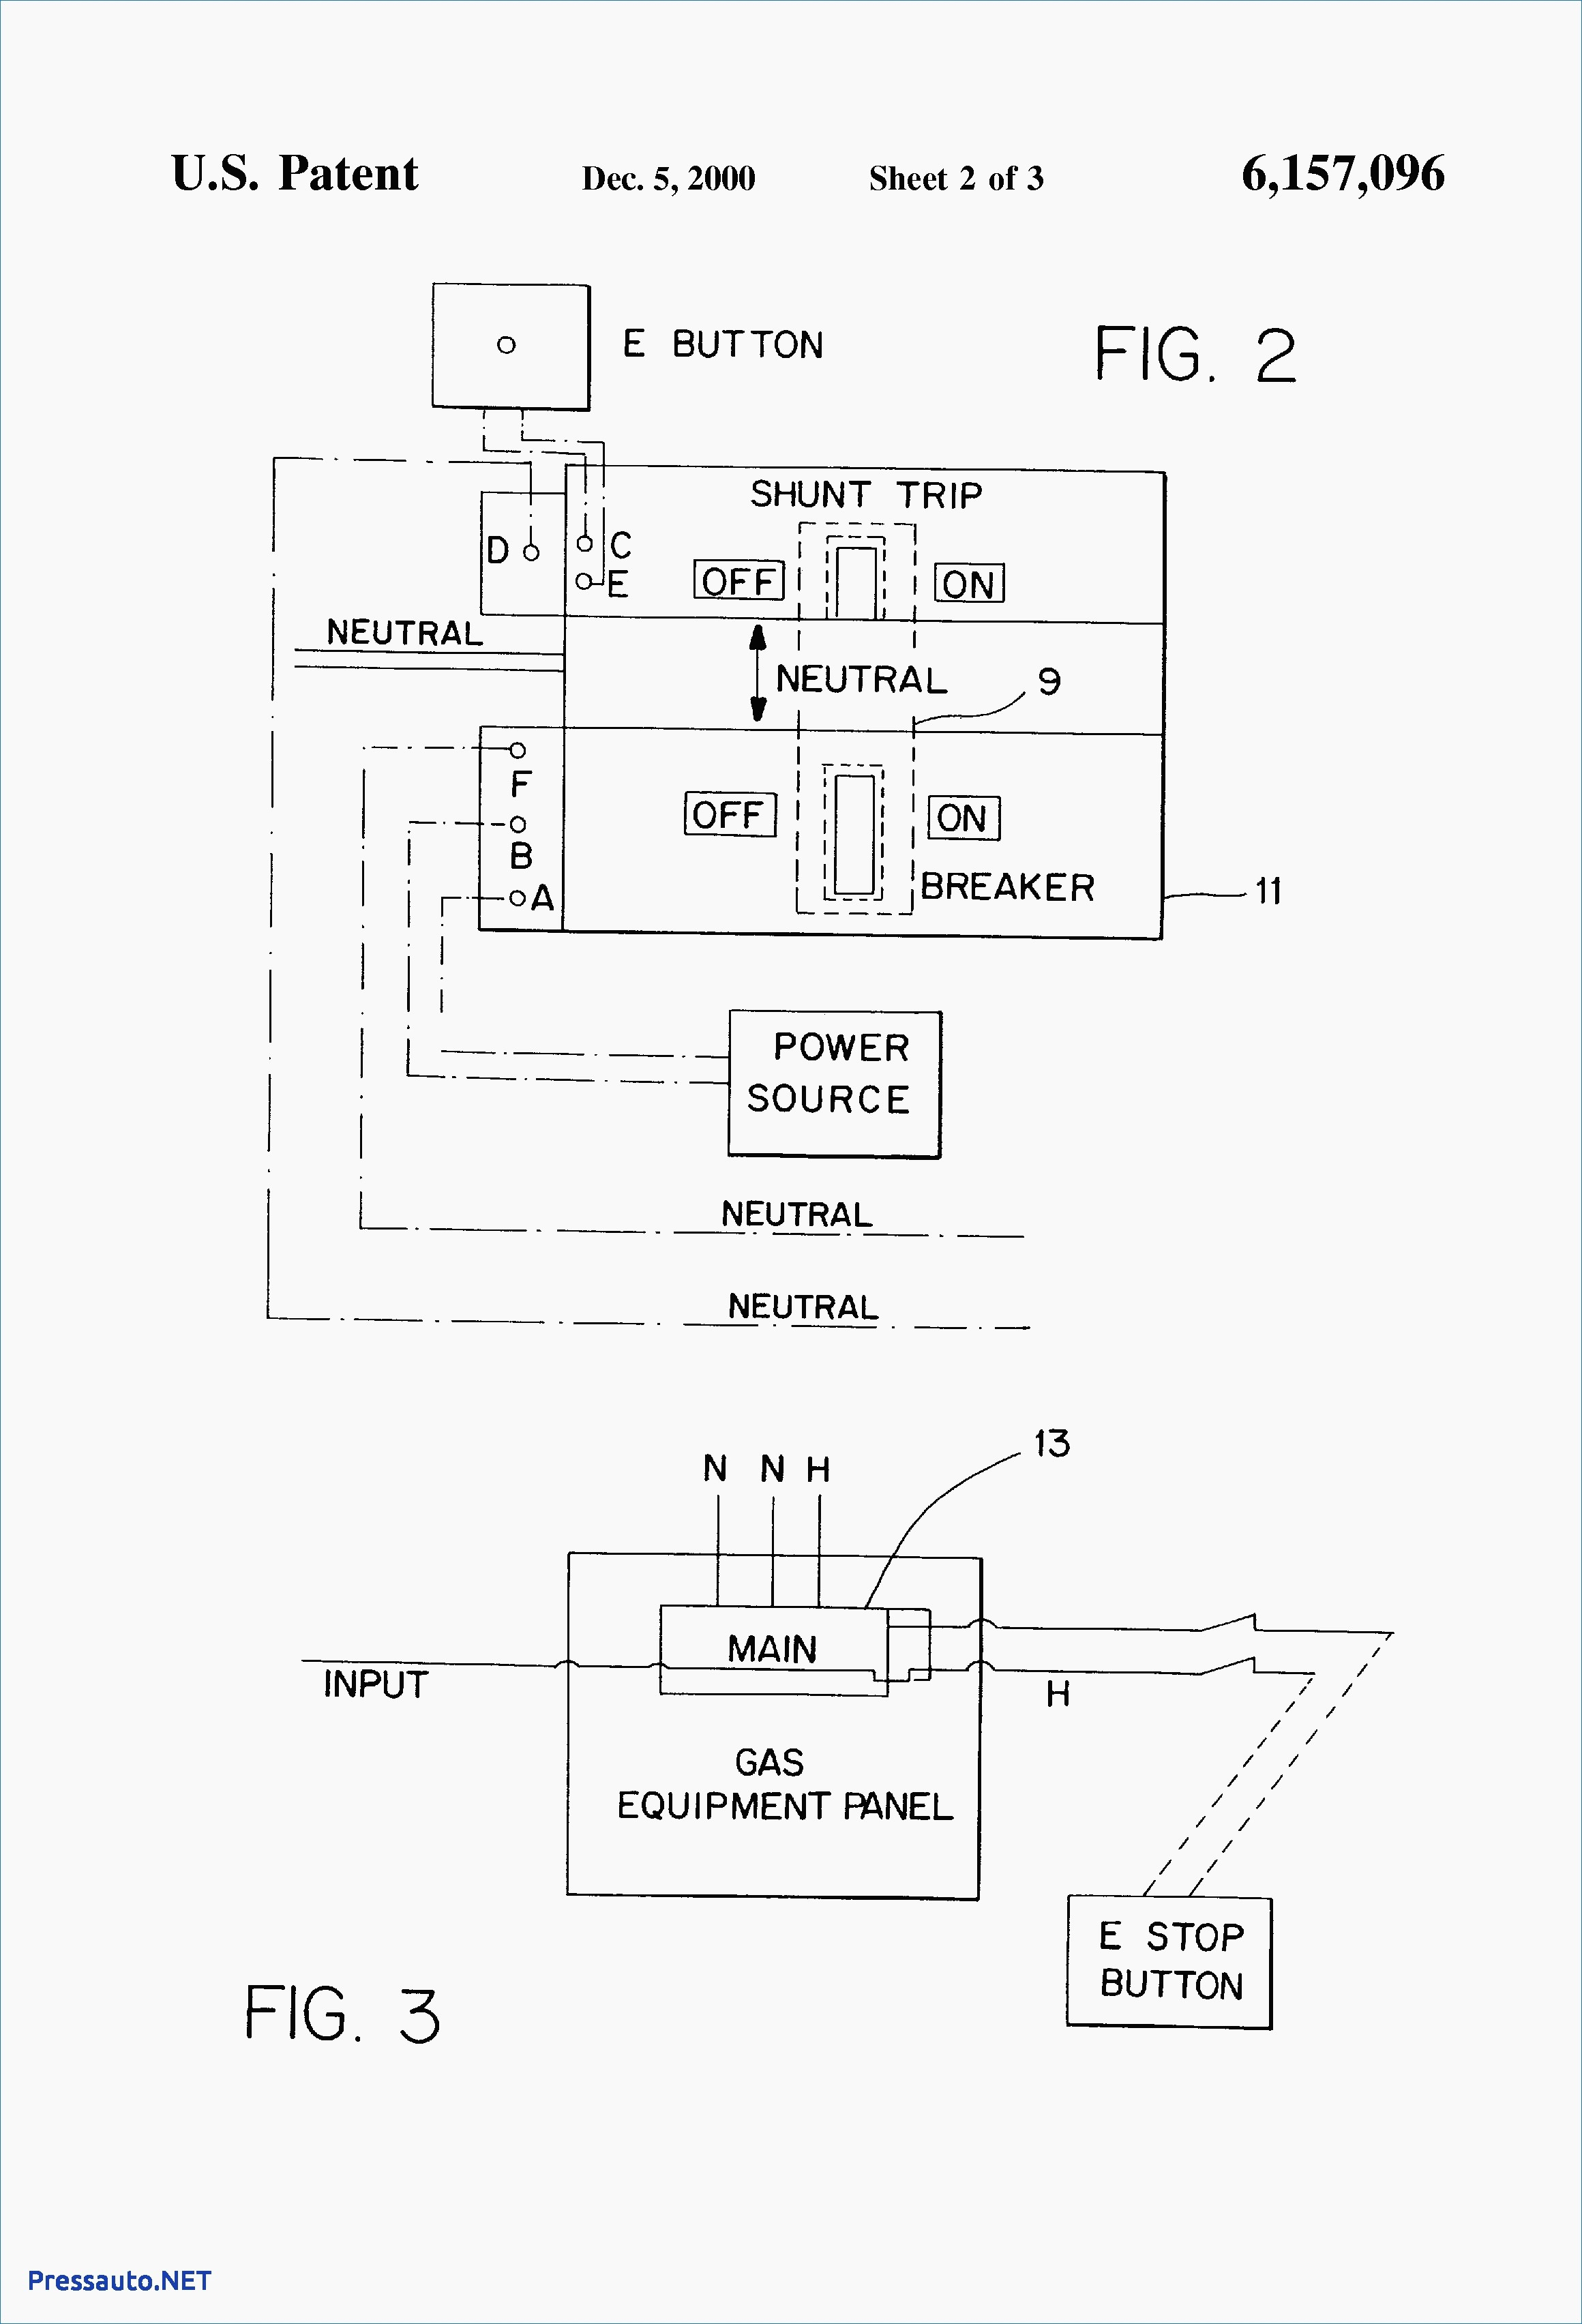 shunt breaker wiring diagram Download-Siemens Shunt Trip Breaker Wiring Diagram With Square D And Wirdig Ideas 4-b